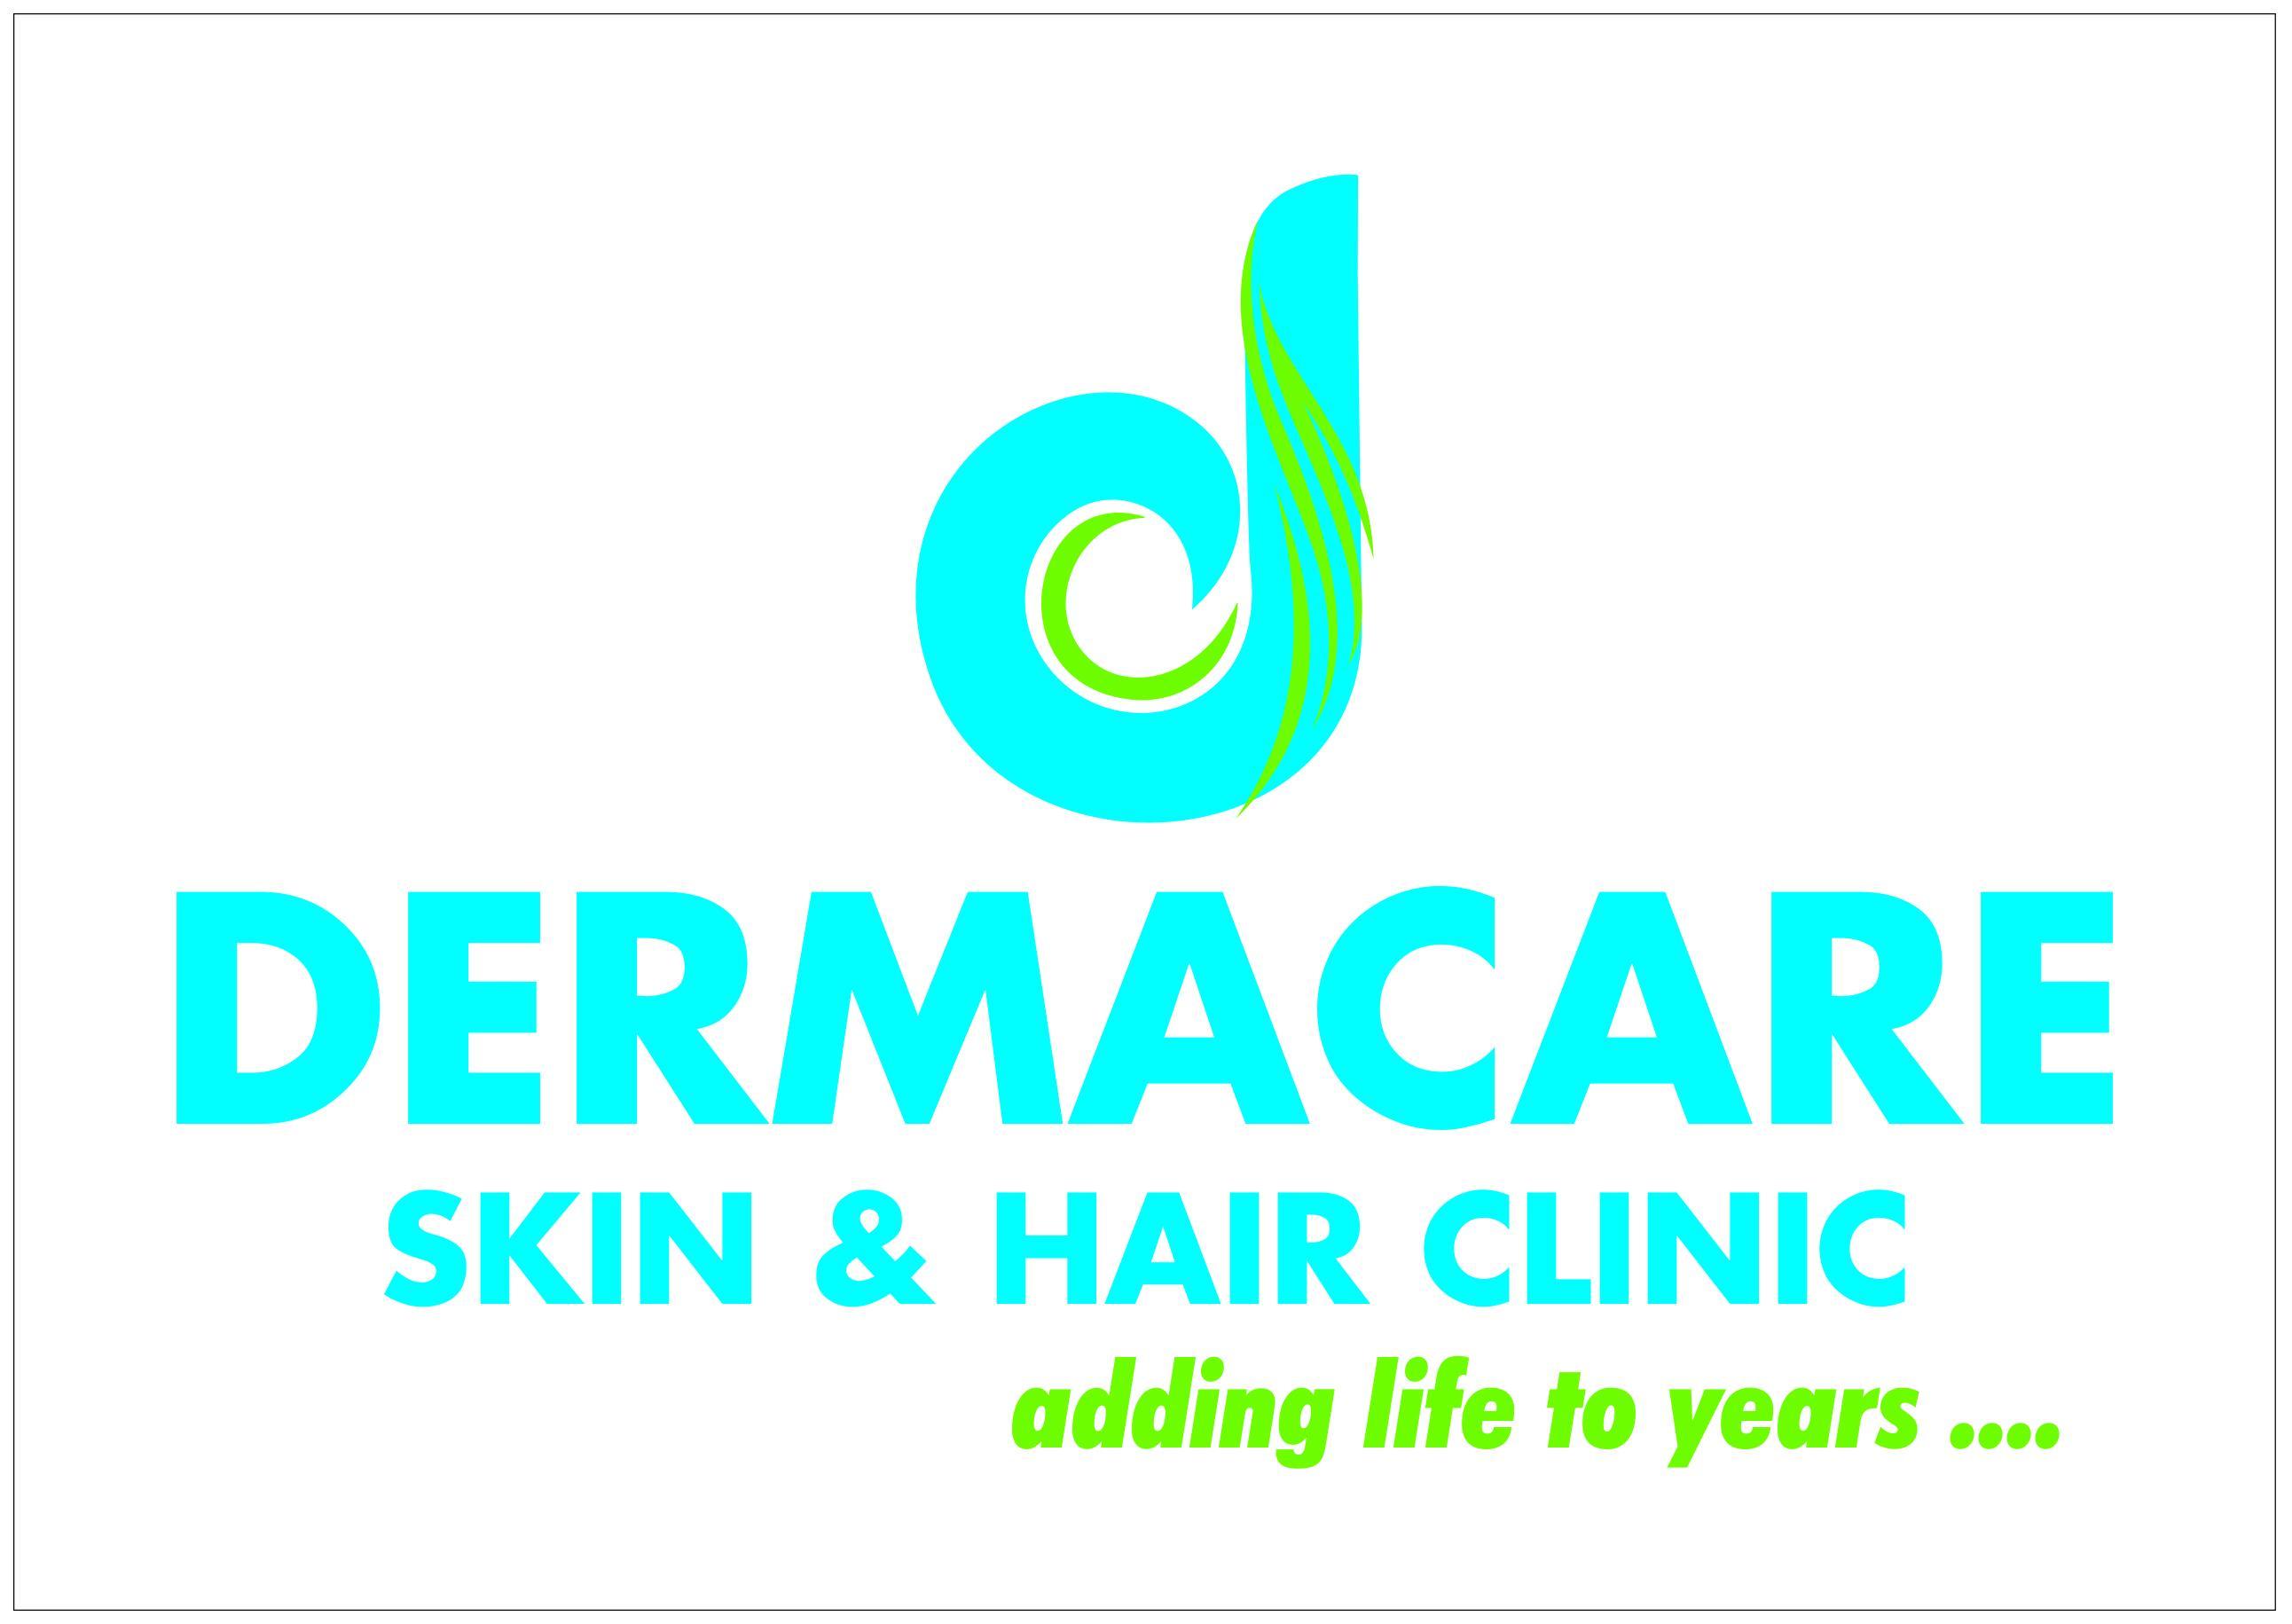 Dermacare Skin & Hair Clinic